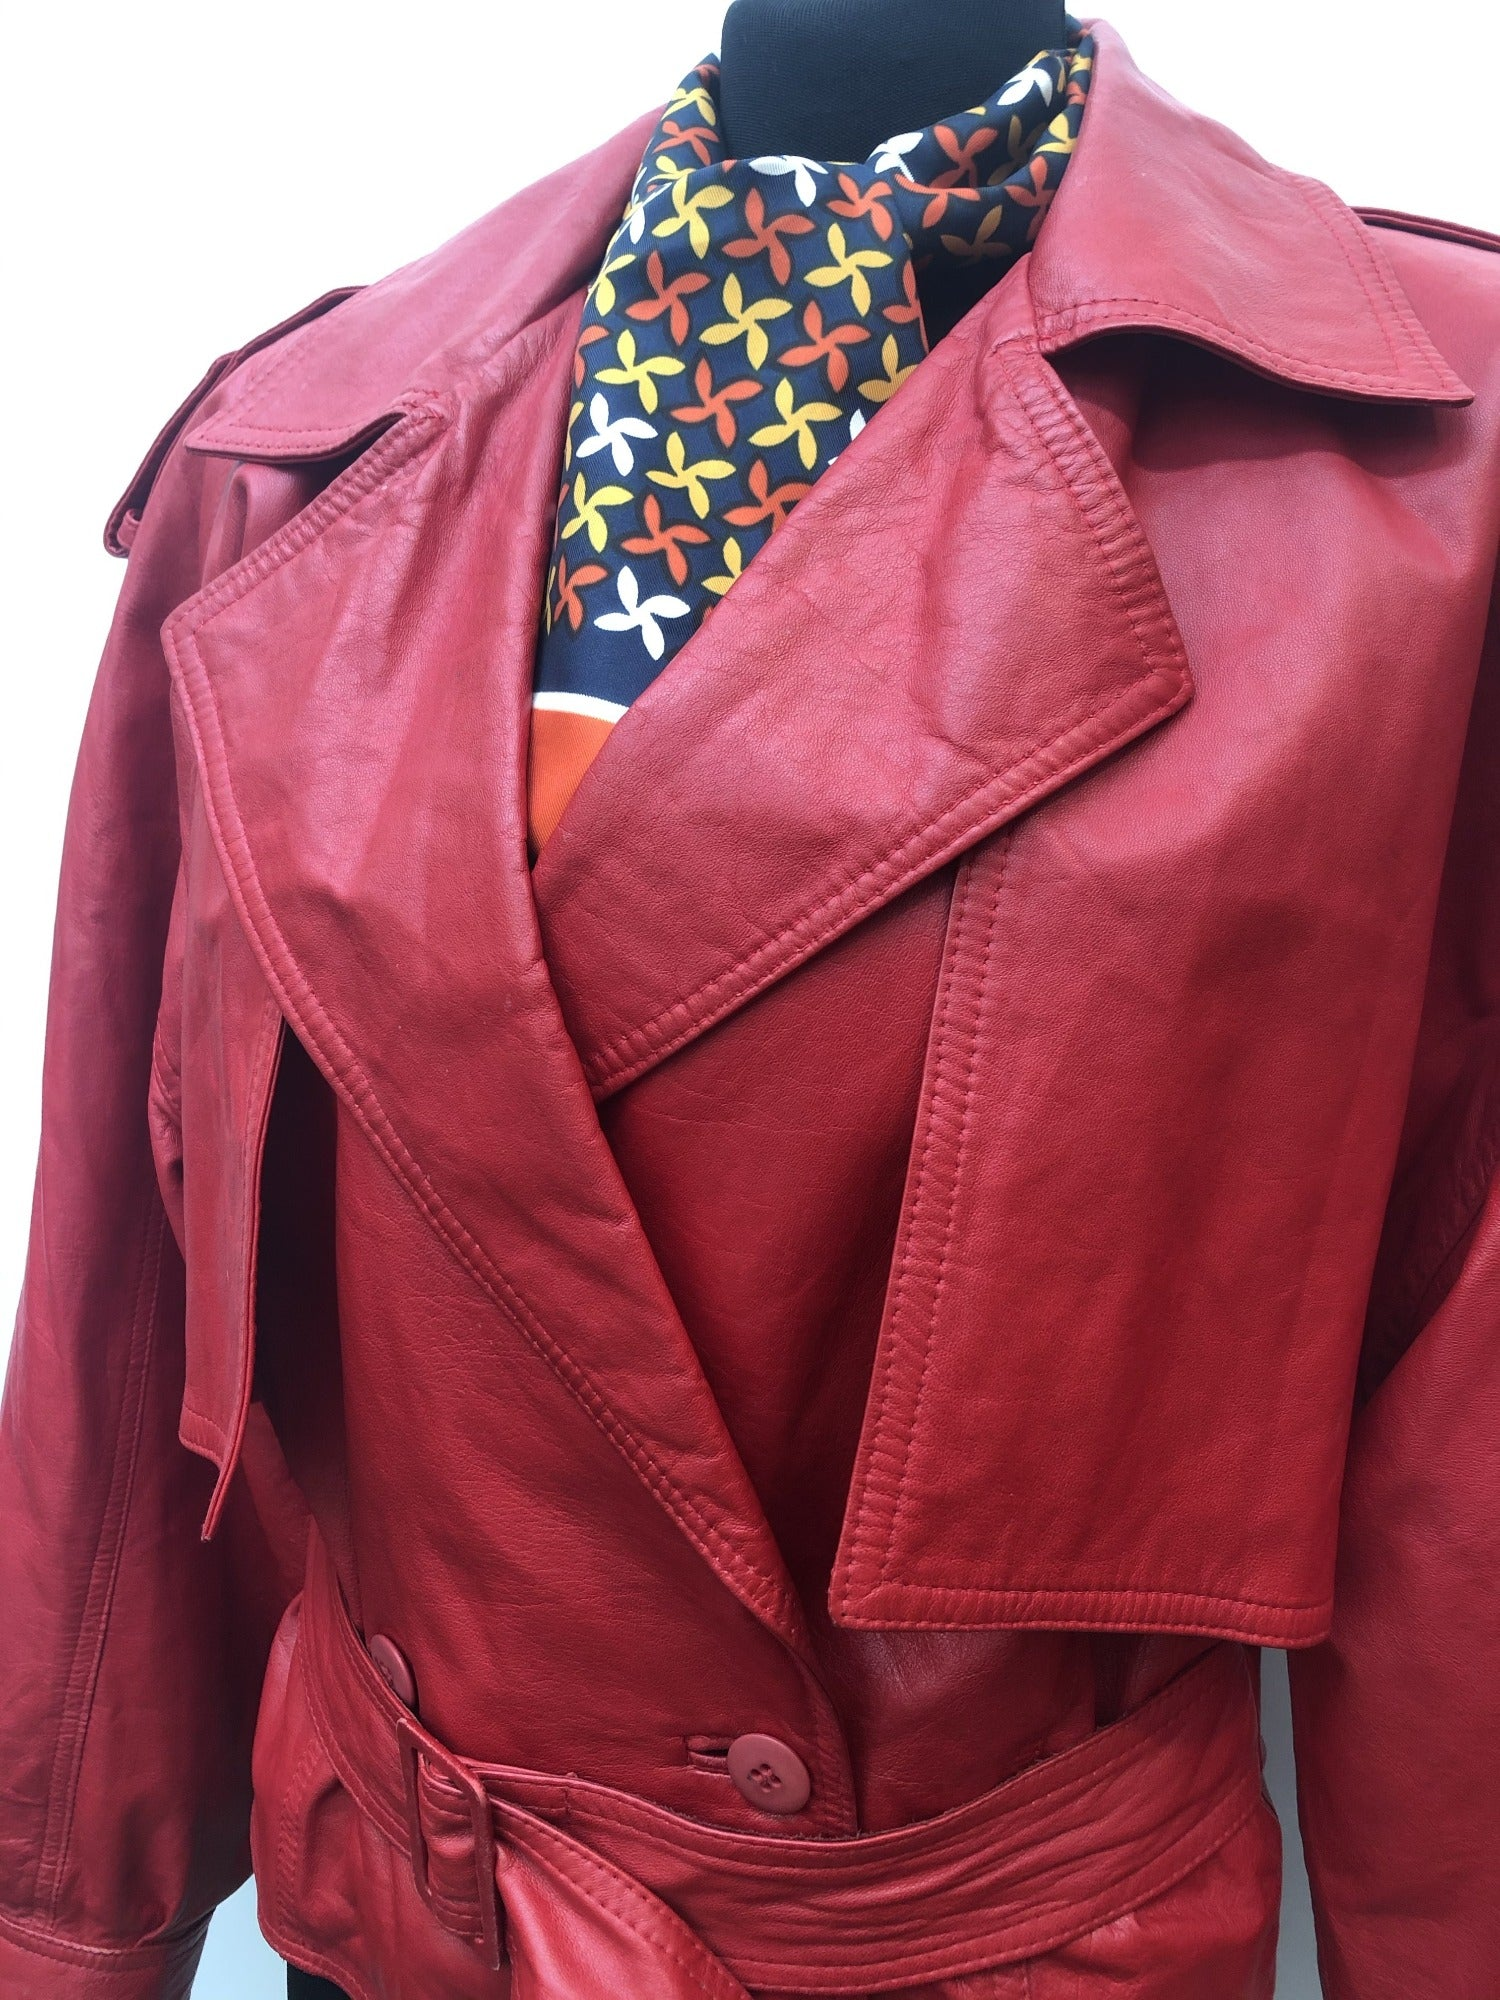 Neto  Leather  Red  womens  vintage  urban village  shoulder pads  puff sleeve  leather jacket  leather  jacket  clothing  80s  1980s  10 Urban Village Vintage